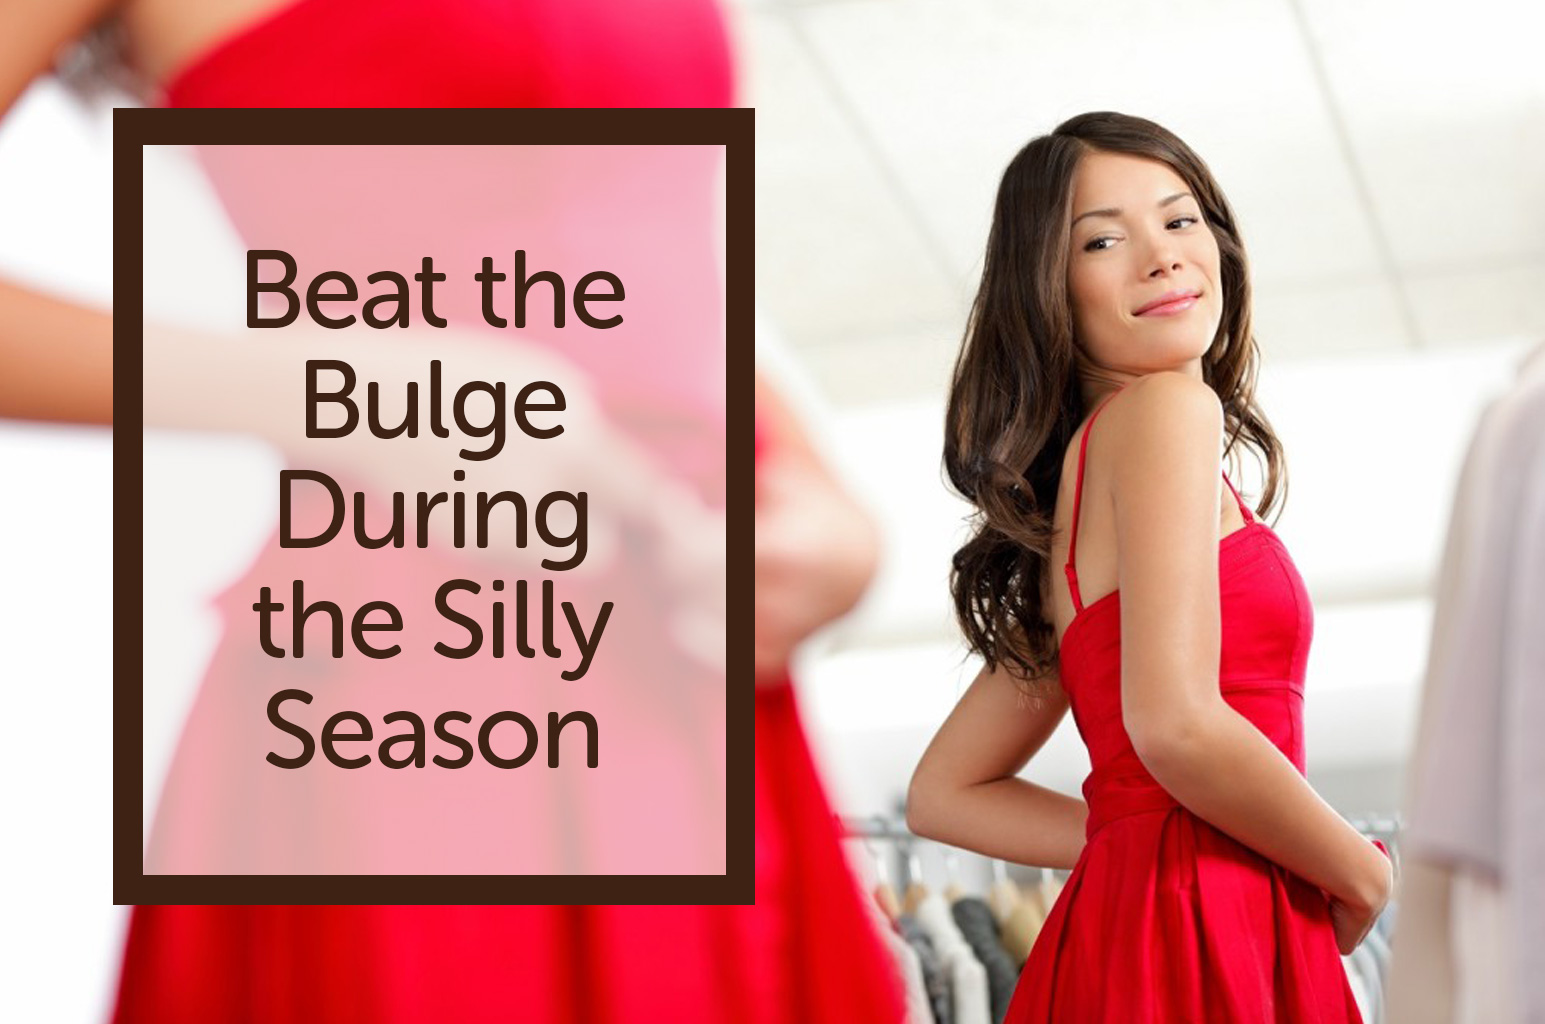 Beat the Bulge During the Silly Season